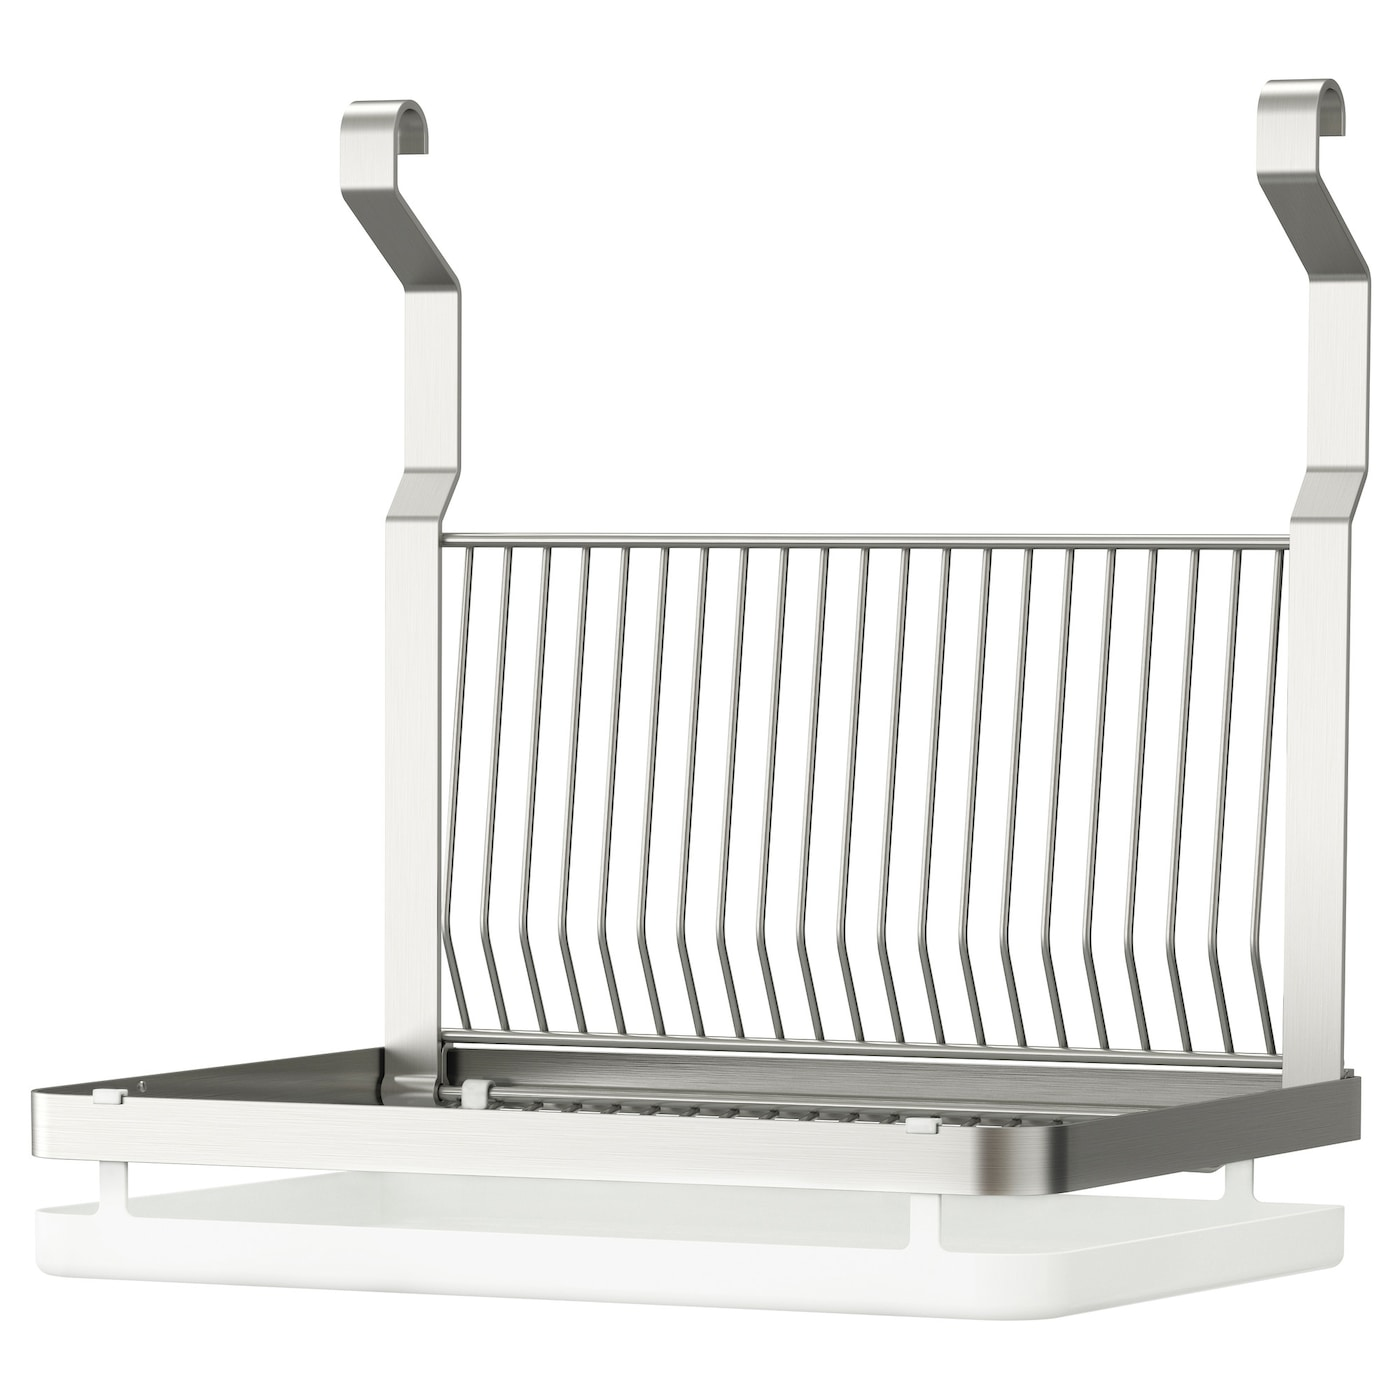 IKEA GRUNDTAL dish drainer Can be hung on GRUNDTAL rail to free up space on the worktop.